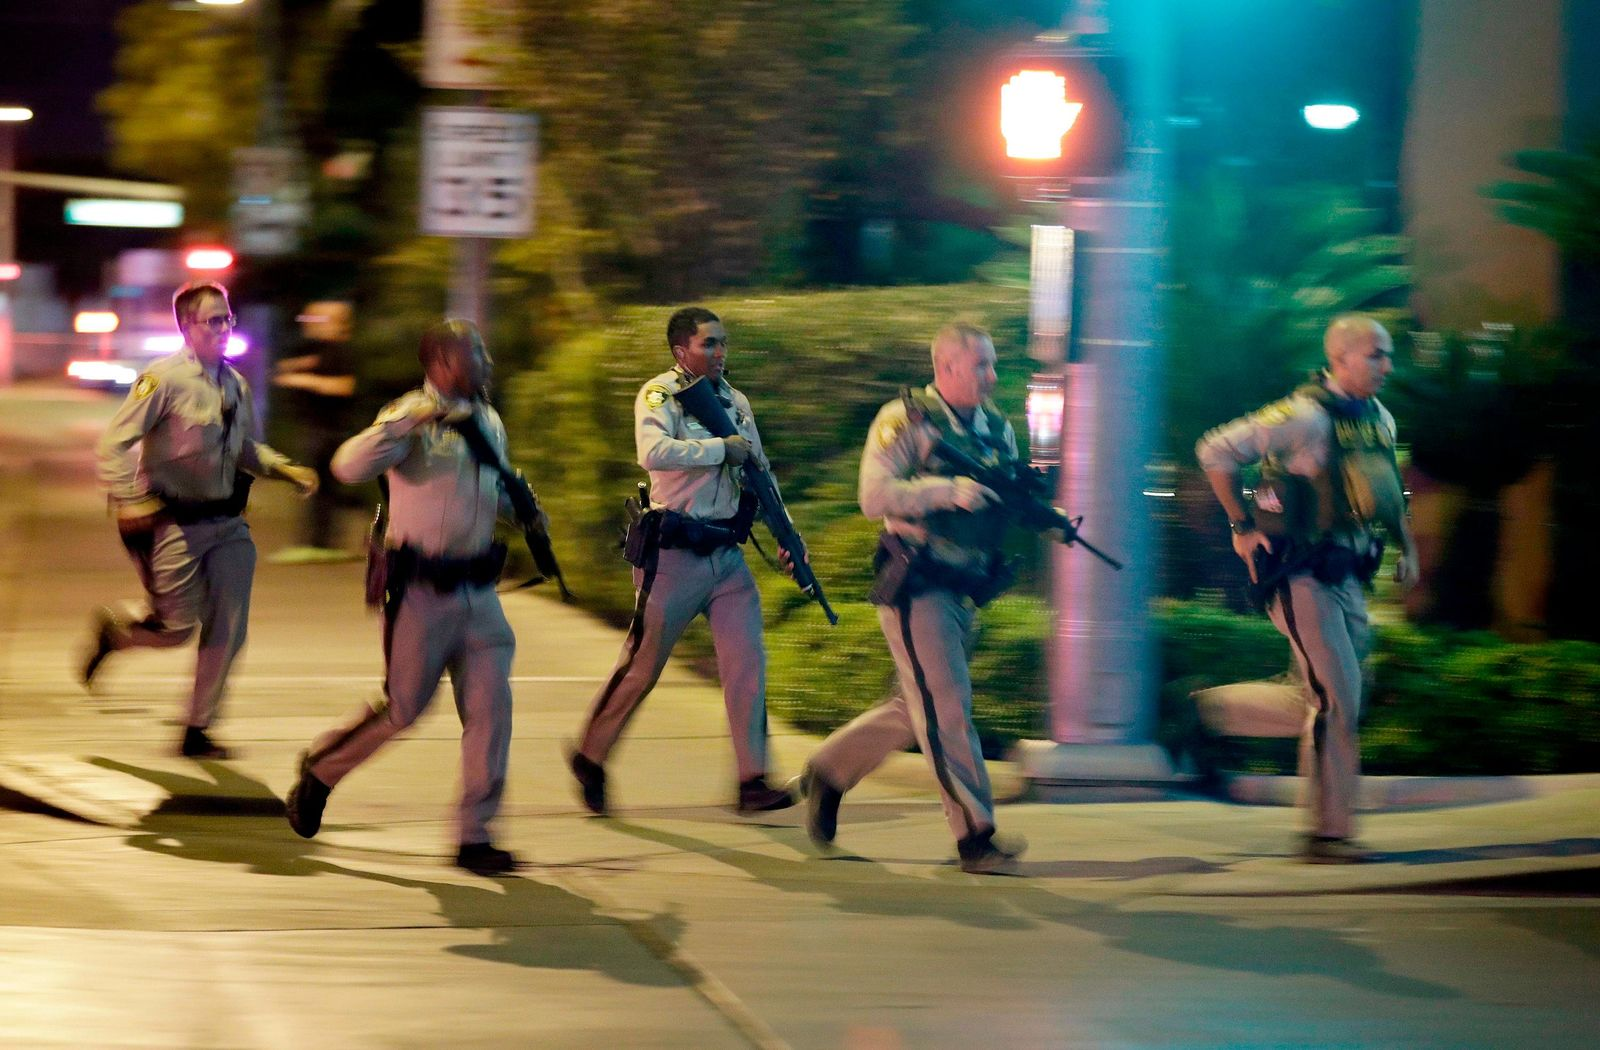 FILE - In this Oct. 1, 2017, file photo, police run toward the scene of a shooting near the Mandalay Bay resort and casino on the Las Vegas Strip in Las Vegas. (AP Photo/John Locher, File)